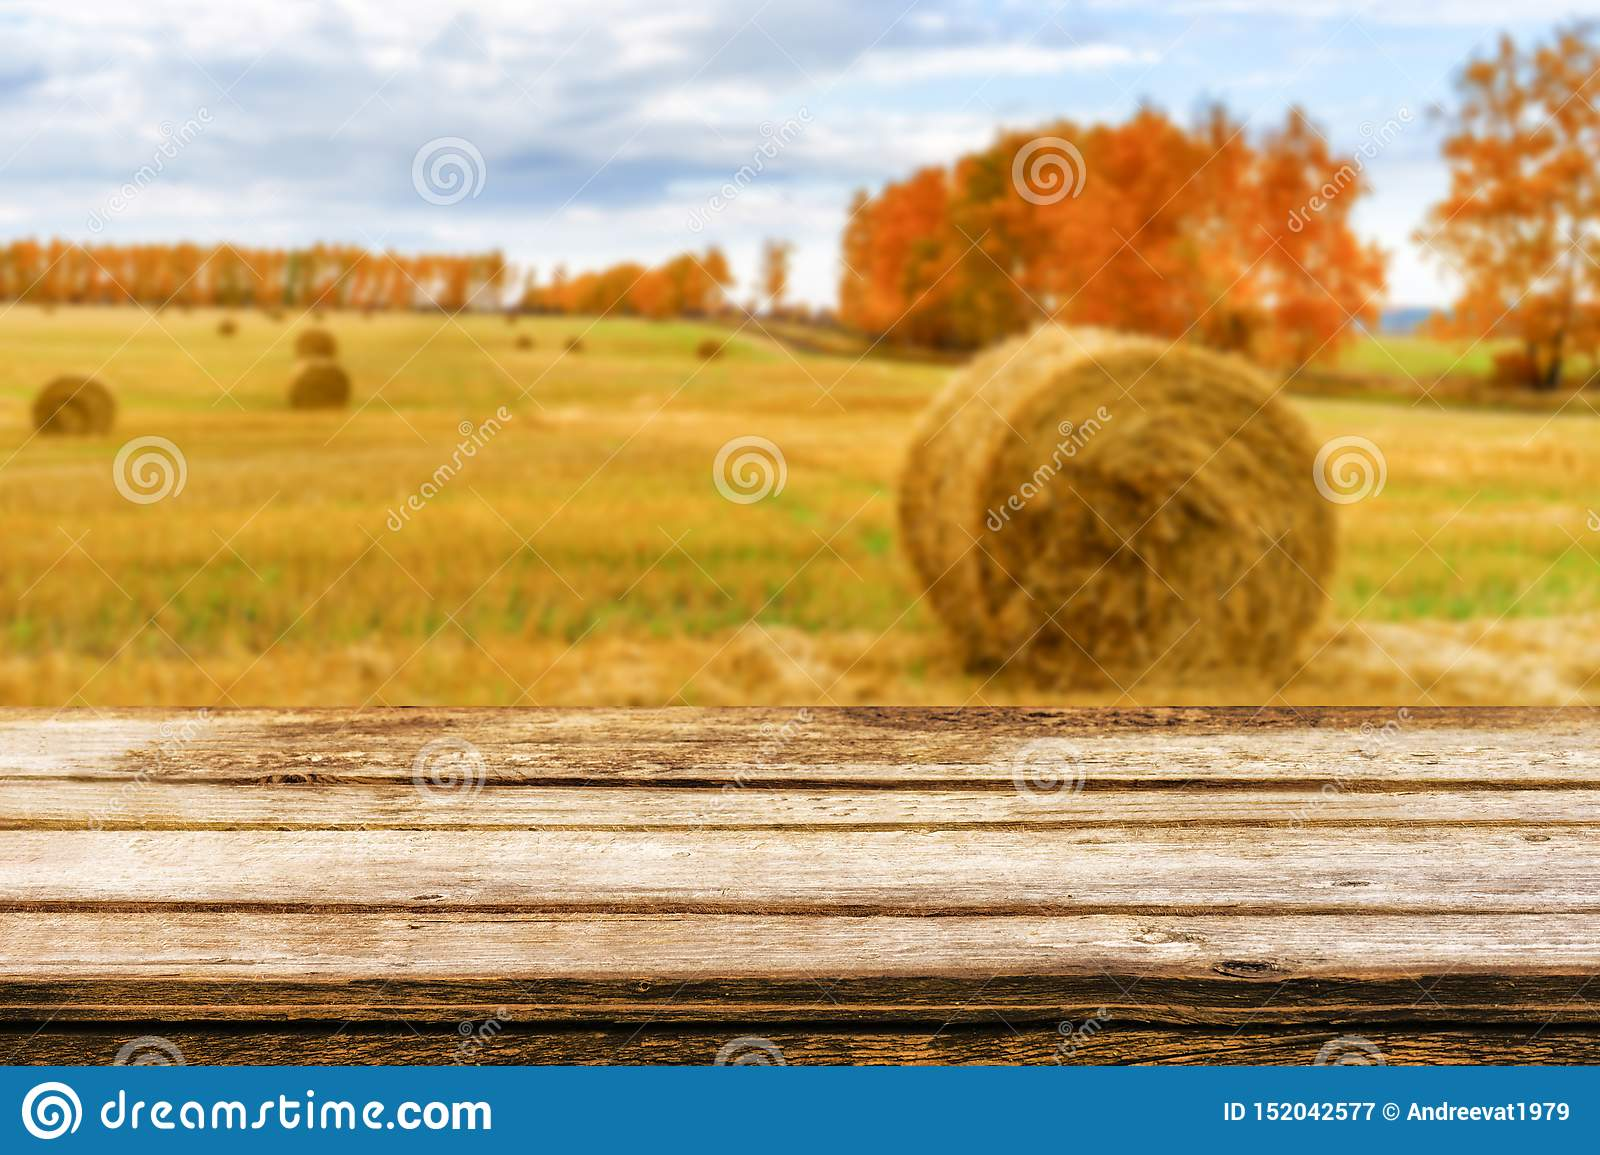 Empty wooden table with blurred autumn landscape of beveled field and straw bales. Mock up for display or montage products